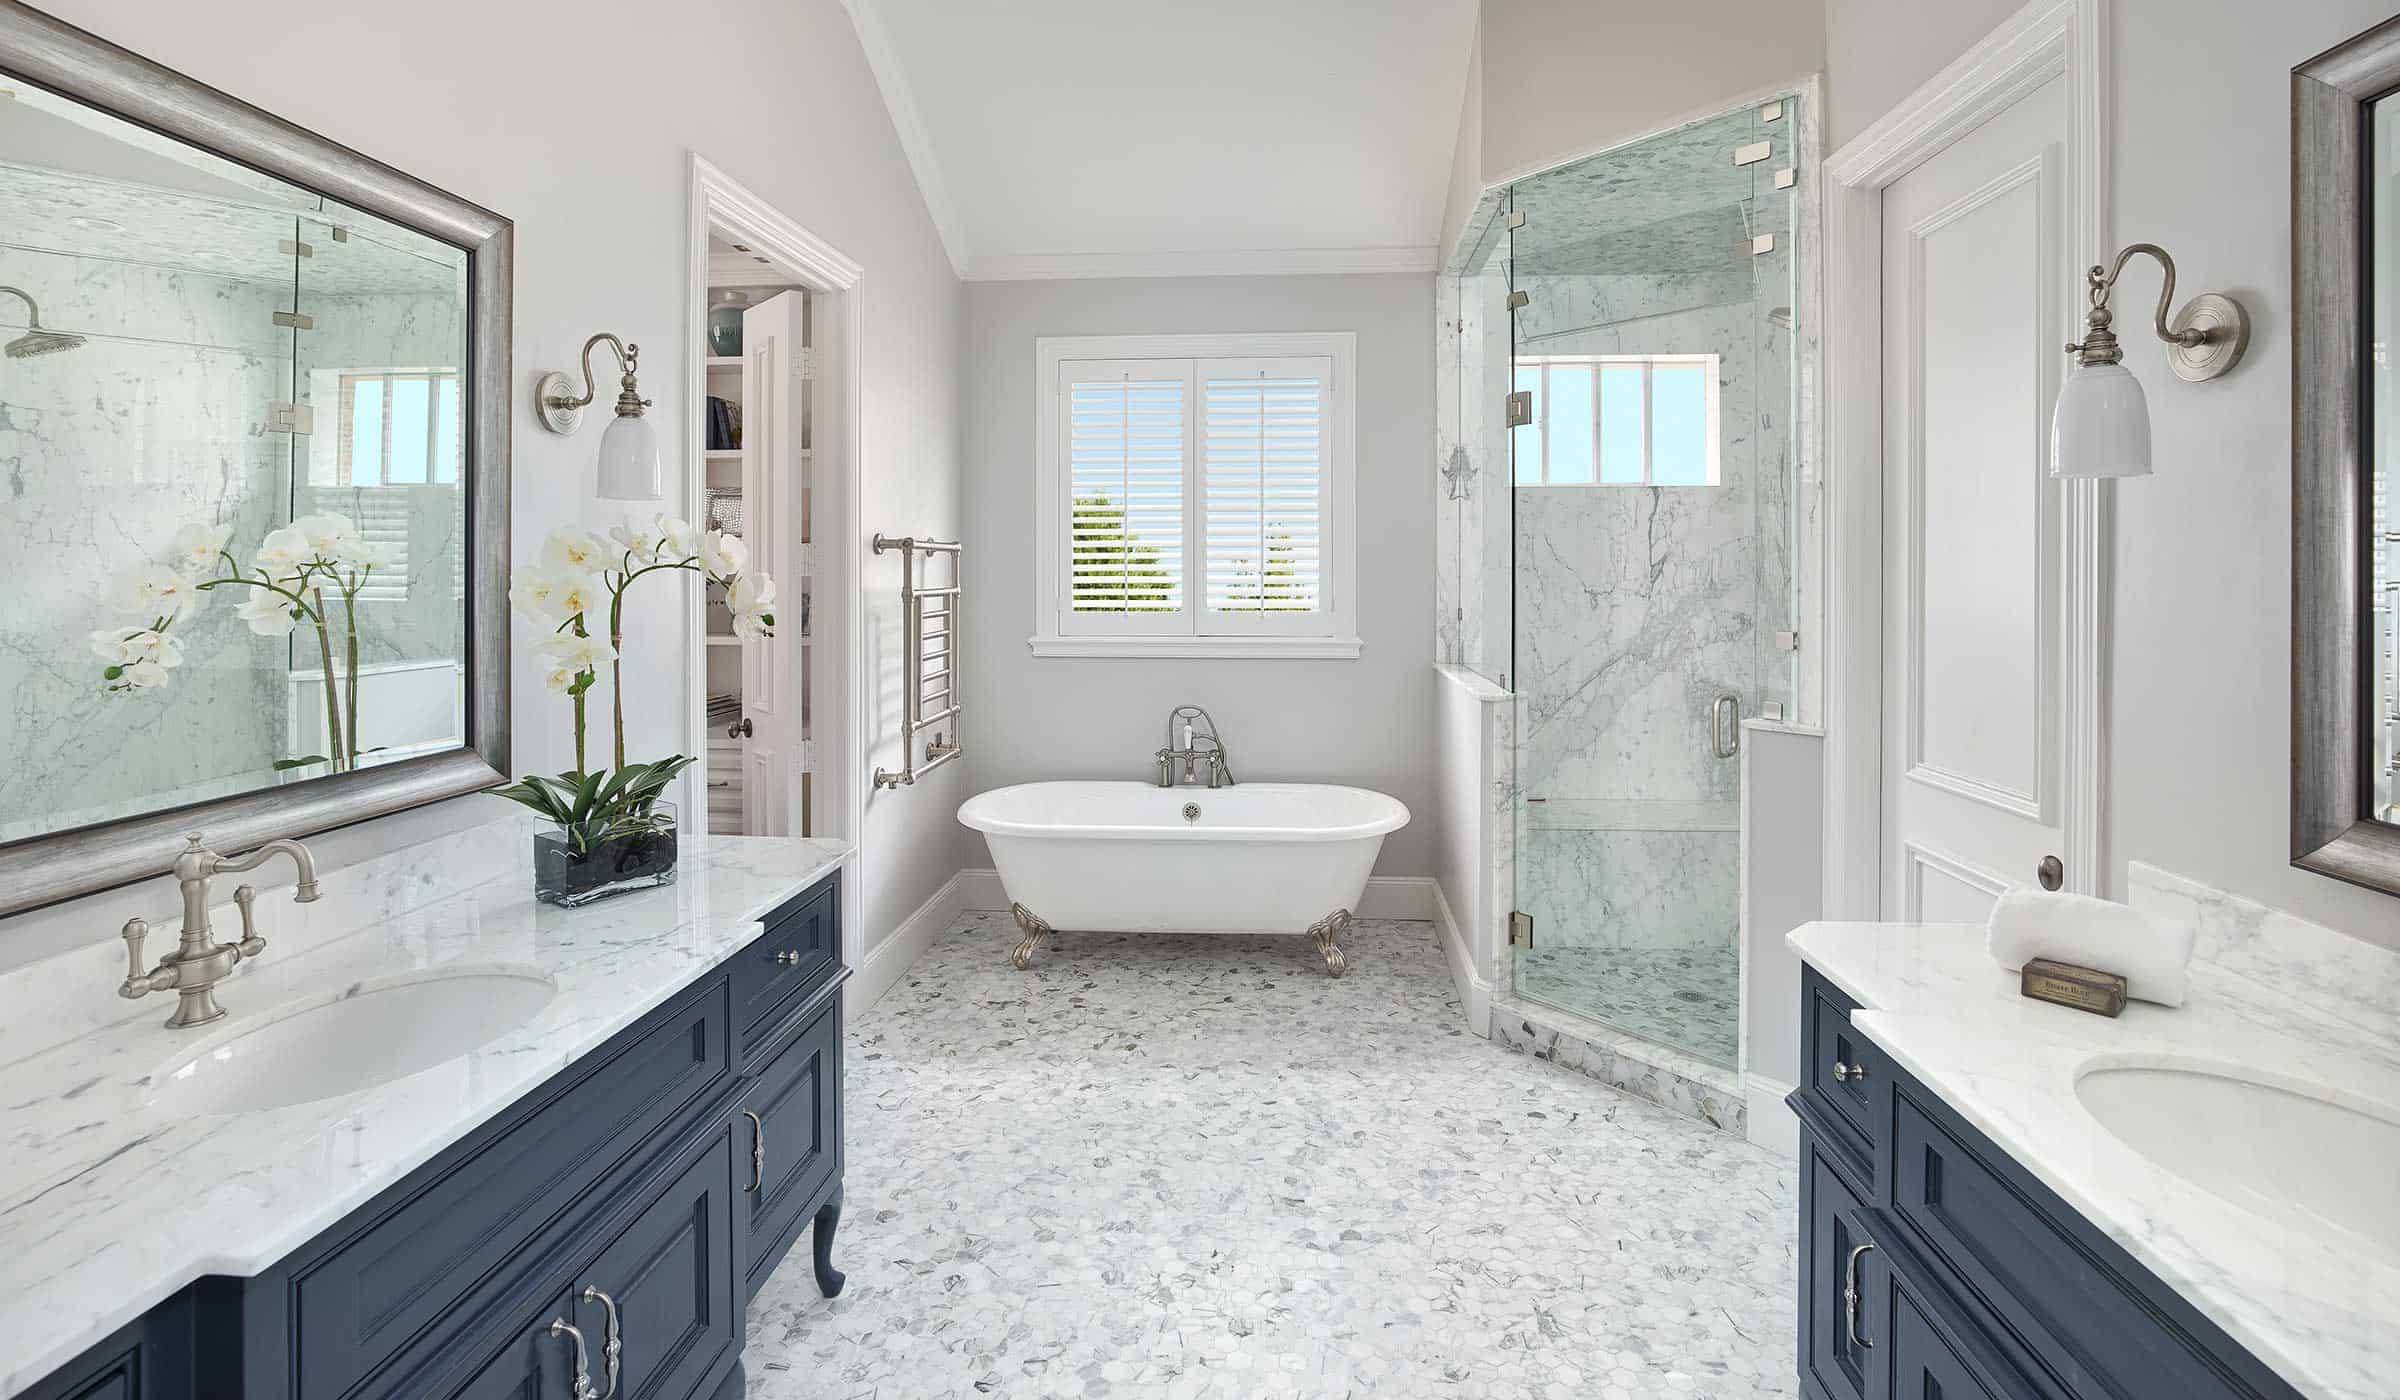 Bathroom Home Interior Design Nicole Arnold Interiors Award Winning Dallas Interior Designer